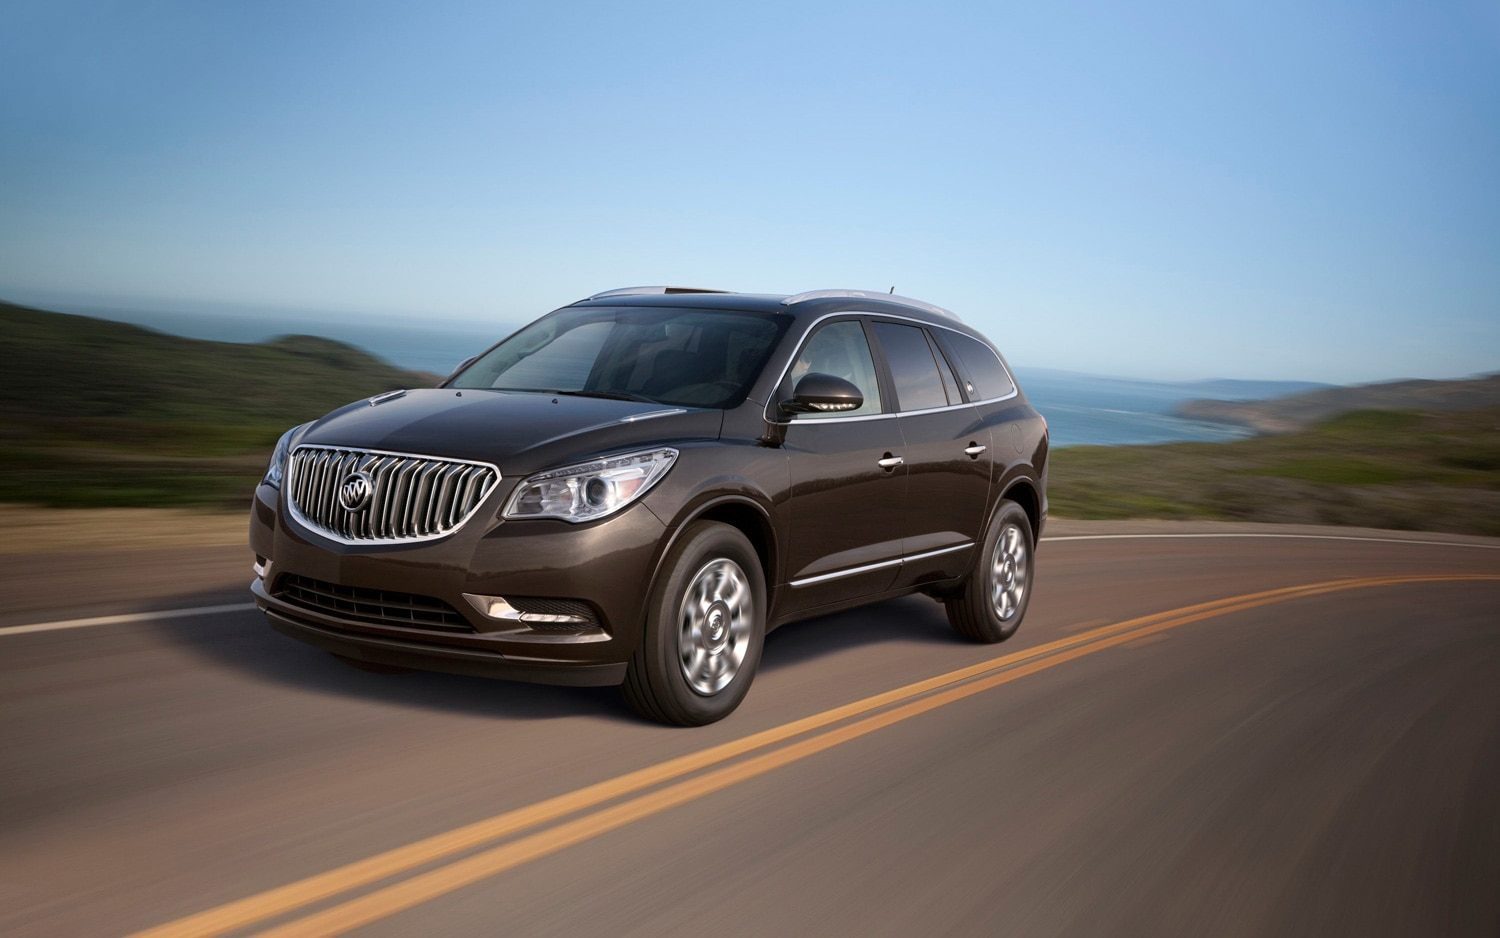 2013 Buick Enclave Front Three Quarters In Motion 3